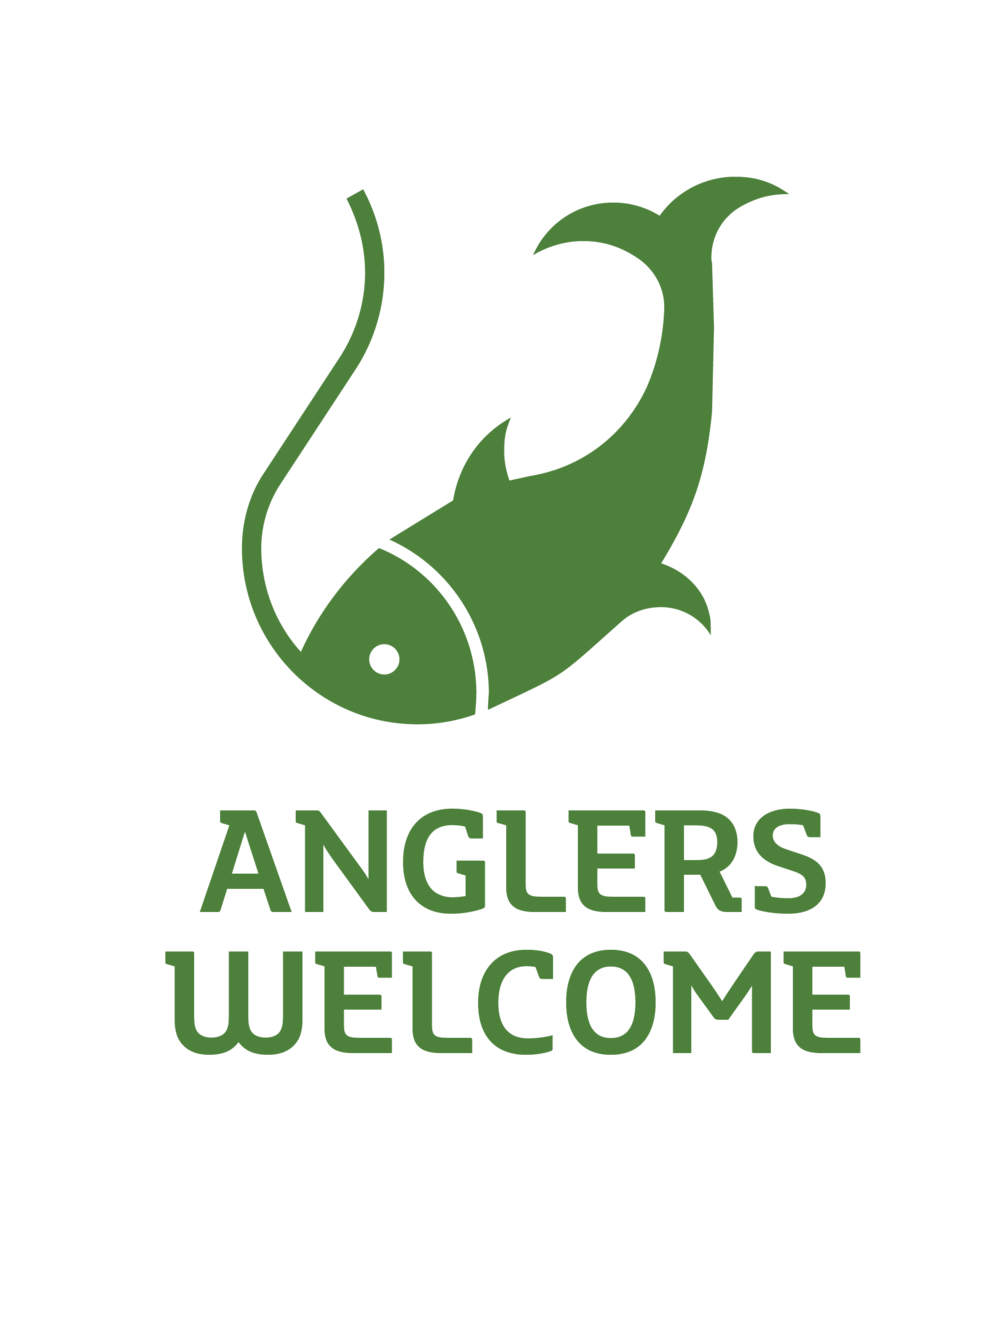 Anglers welcome.jpg